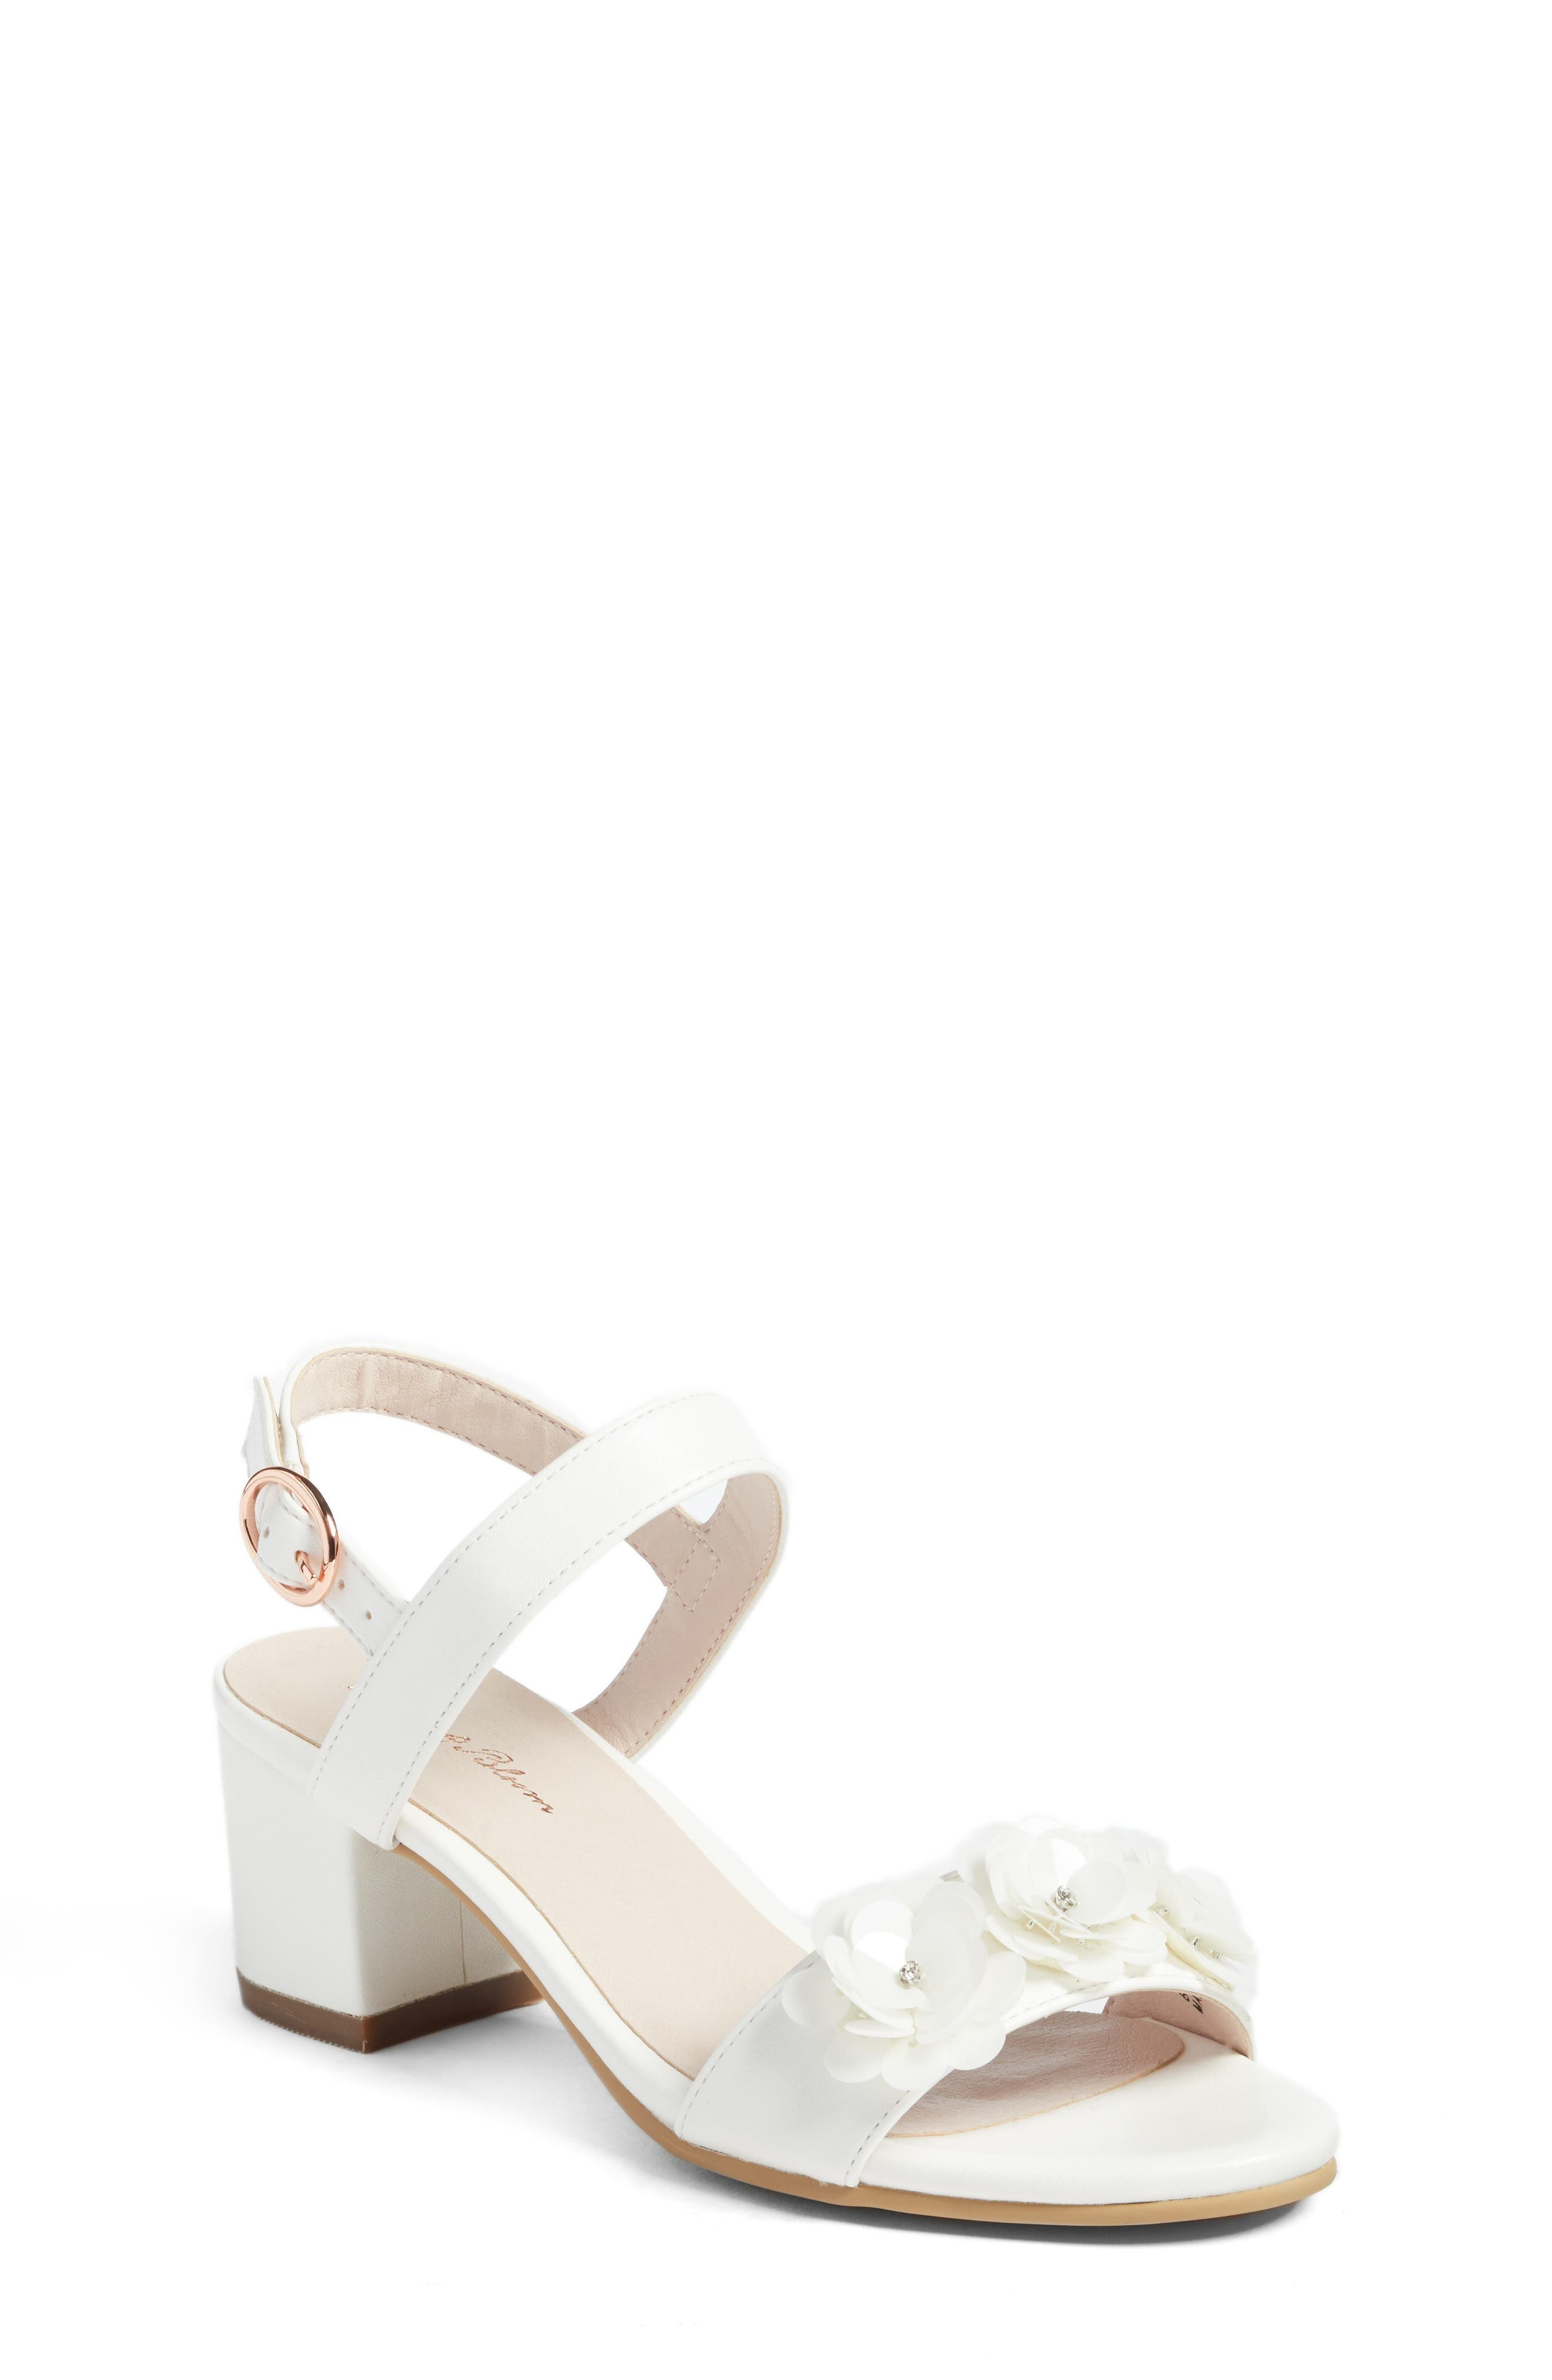 Dina Flowered Sandal,                         Main,                         color, White Faux Leather